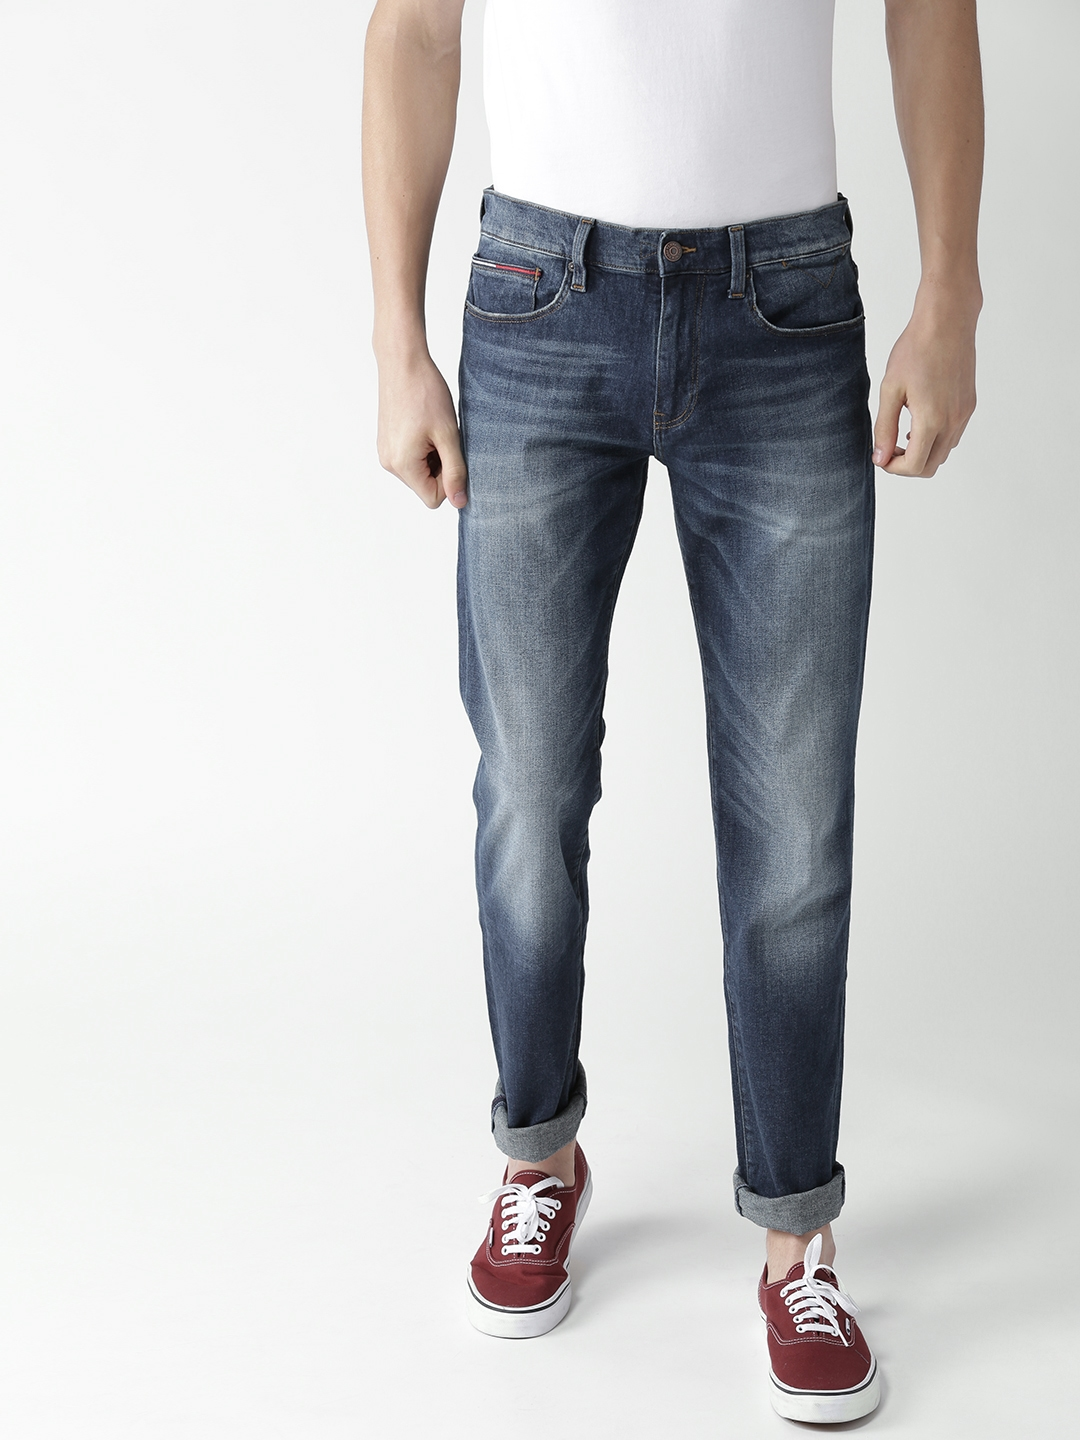 35fa45650 Tommy Hilfiger Men Blue Classic Straight Fit Mid-Rise Clean Look  Stretchable Jeans